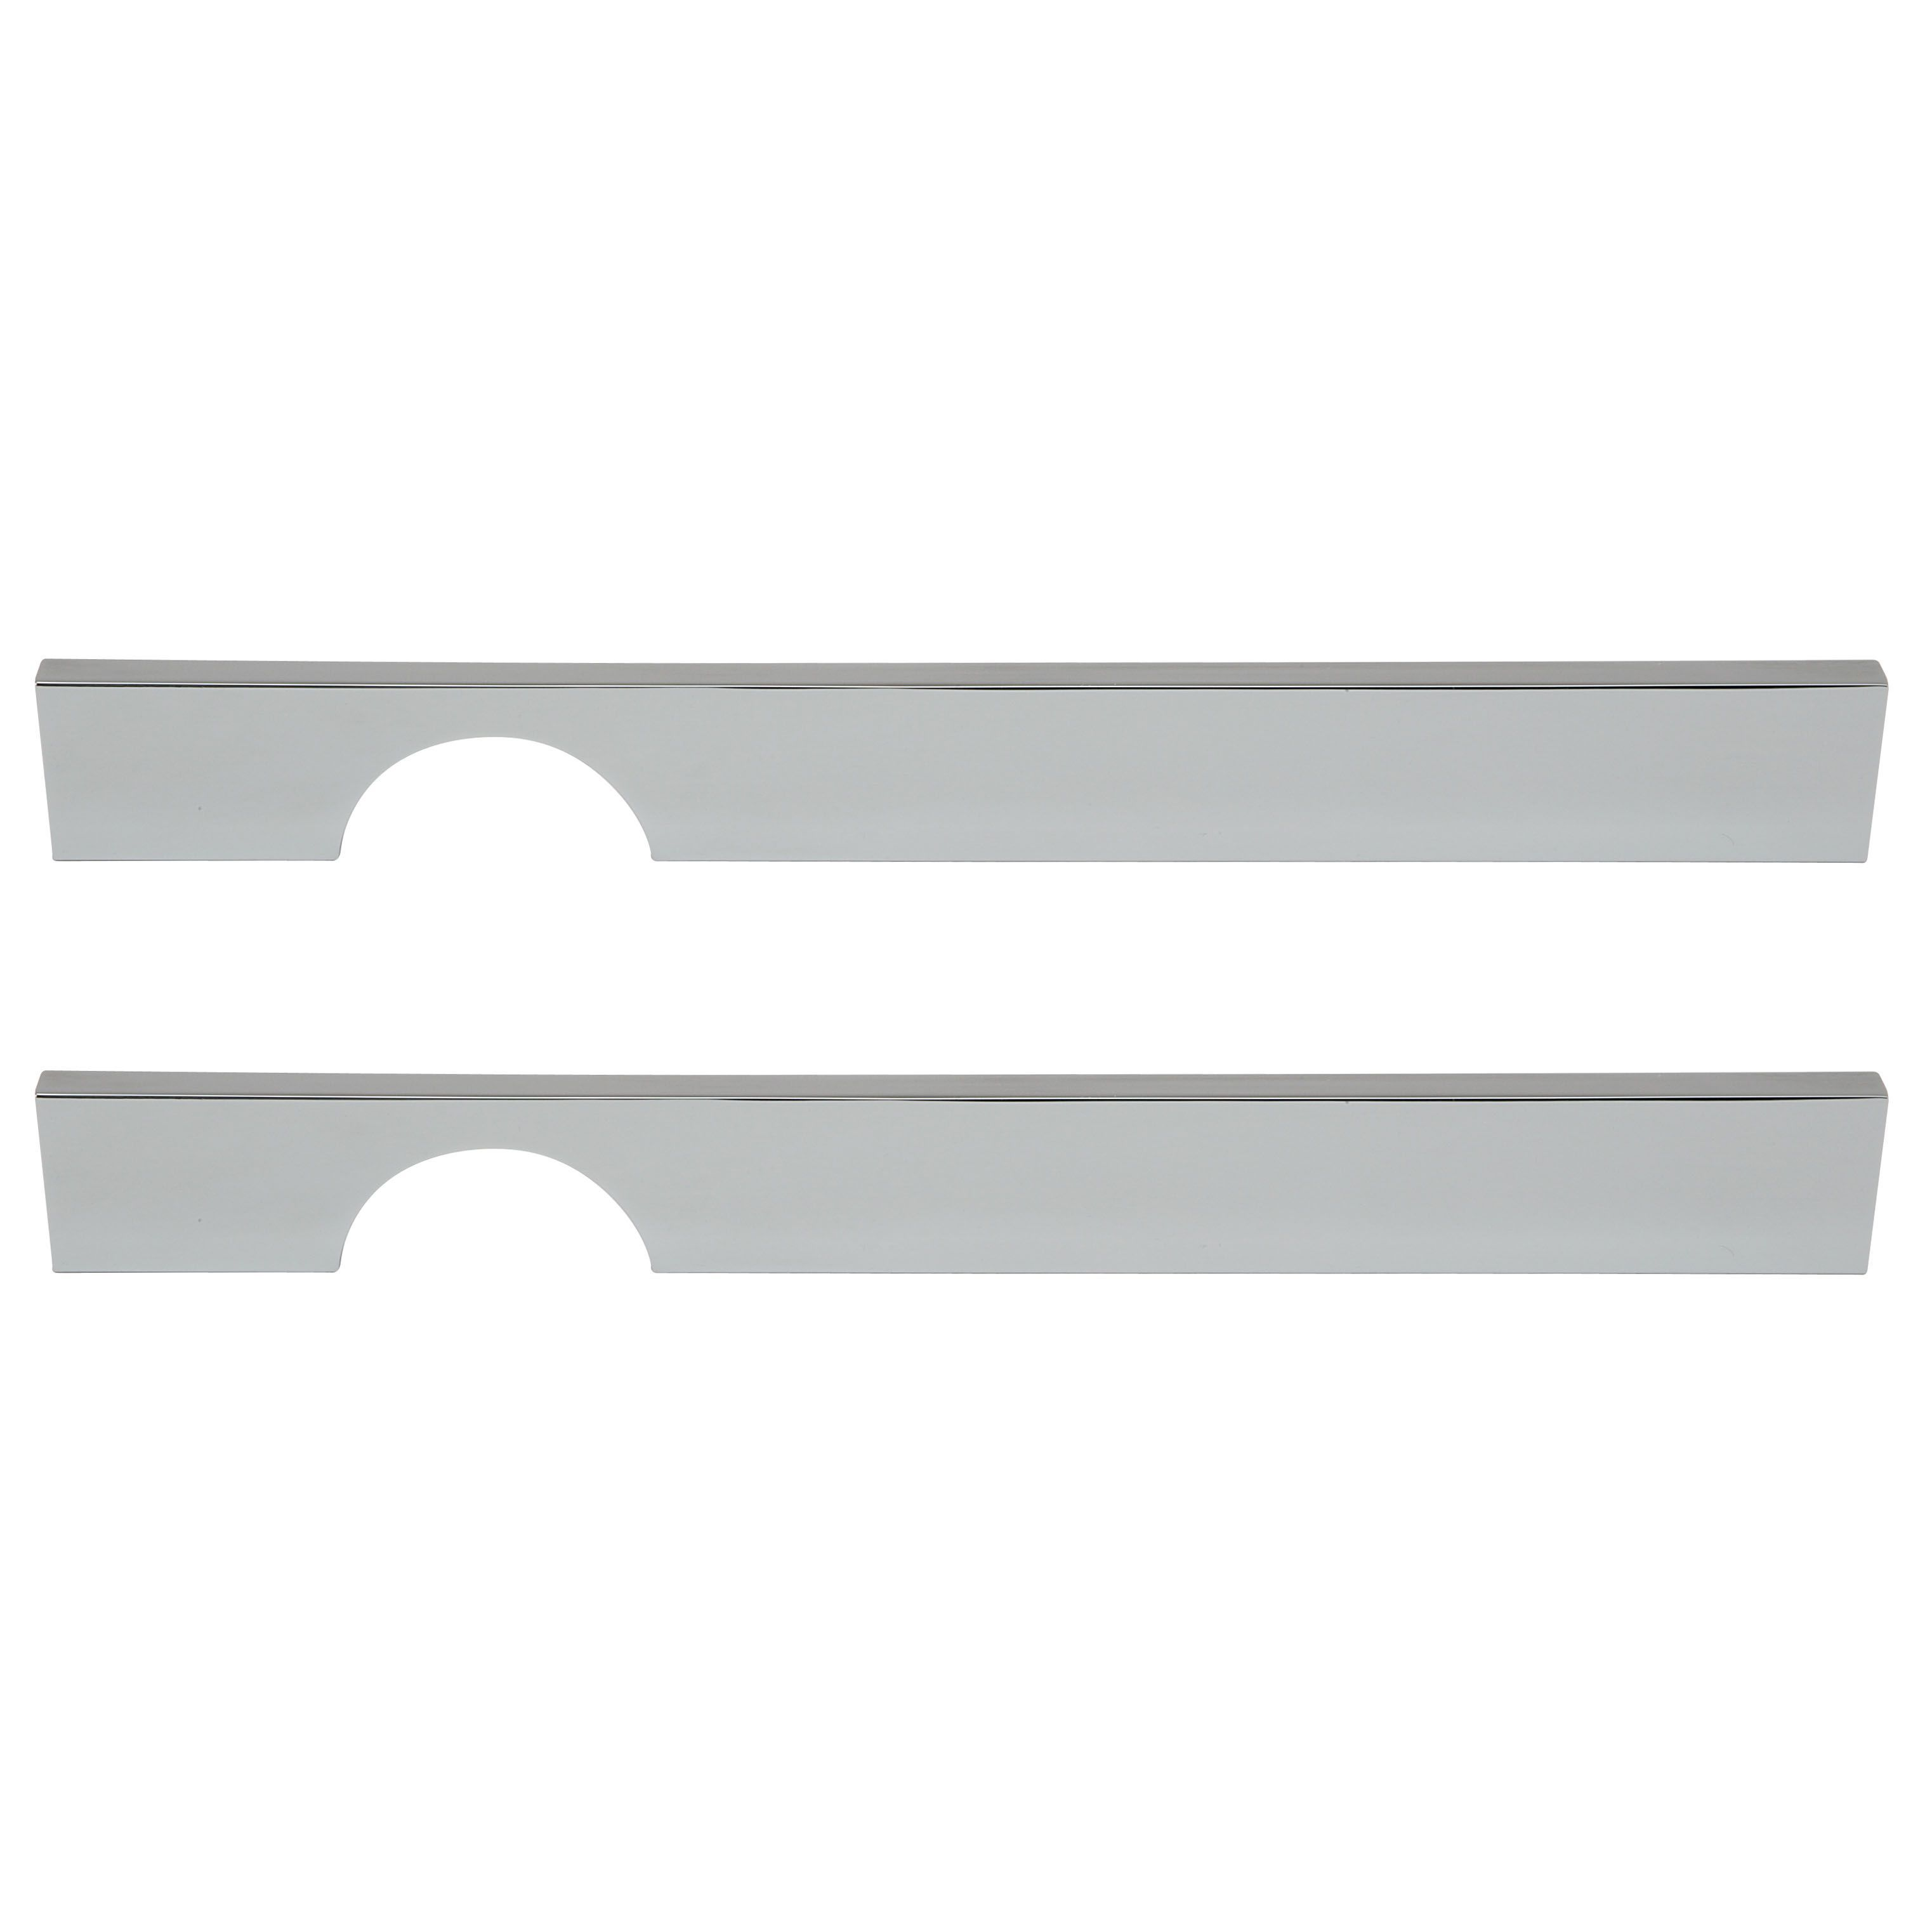 Cooke U0026 Lewis Polished Chrome Effect Straight Small Cut Out Cabinet Handle,  Pack Of